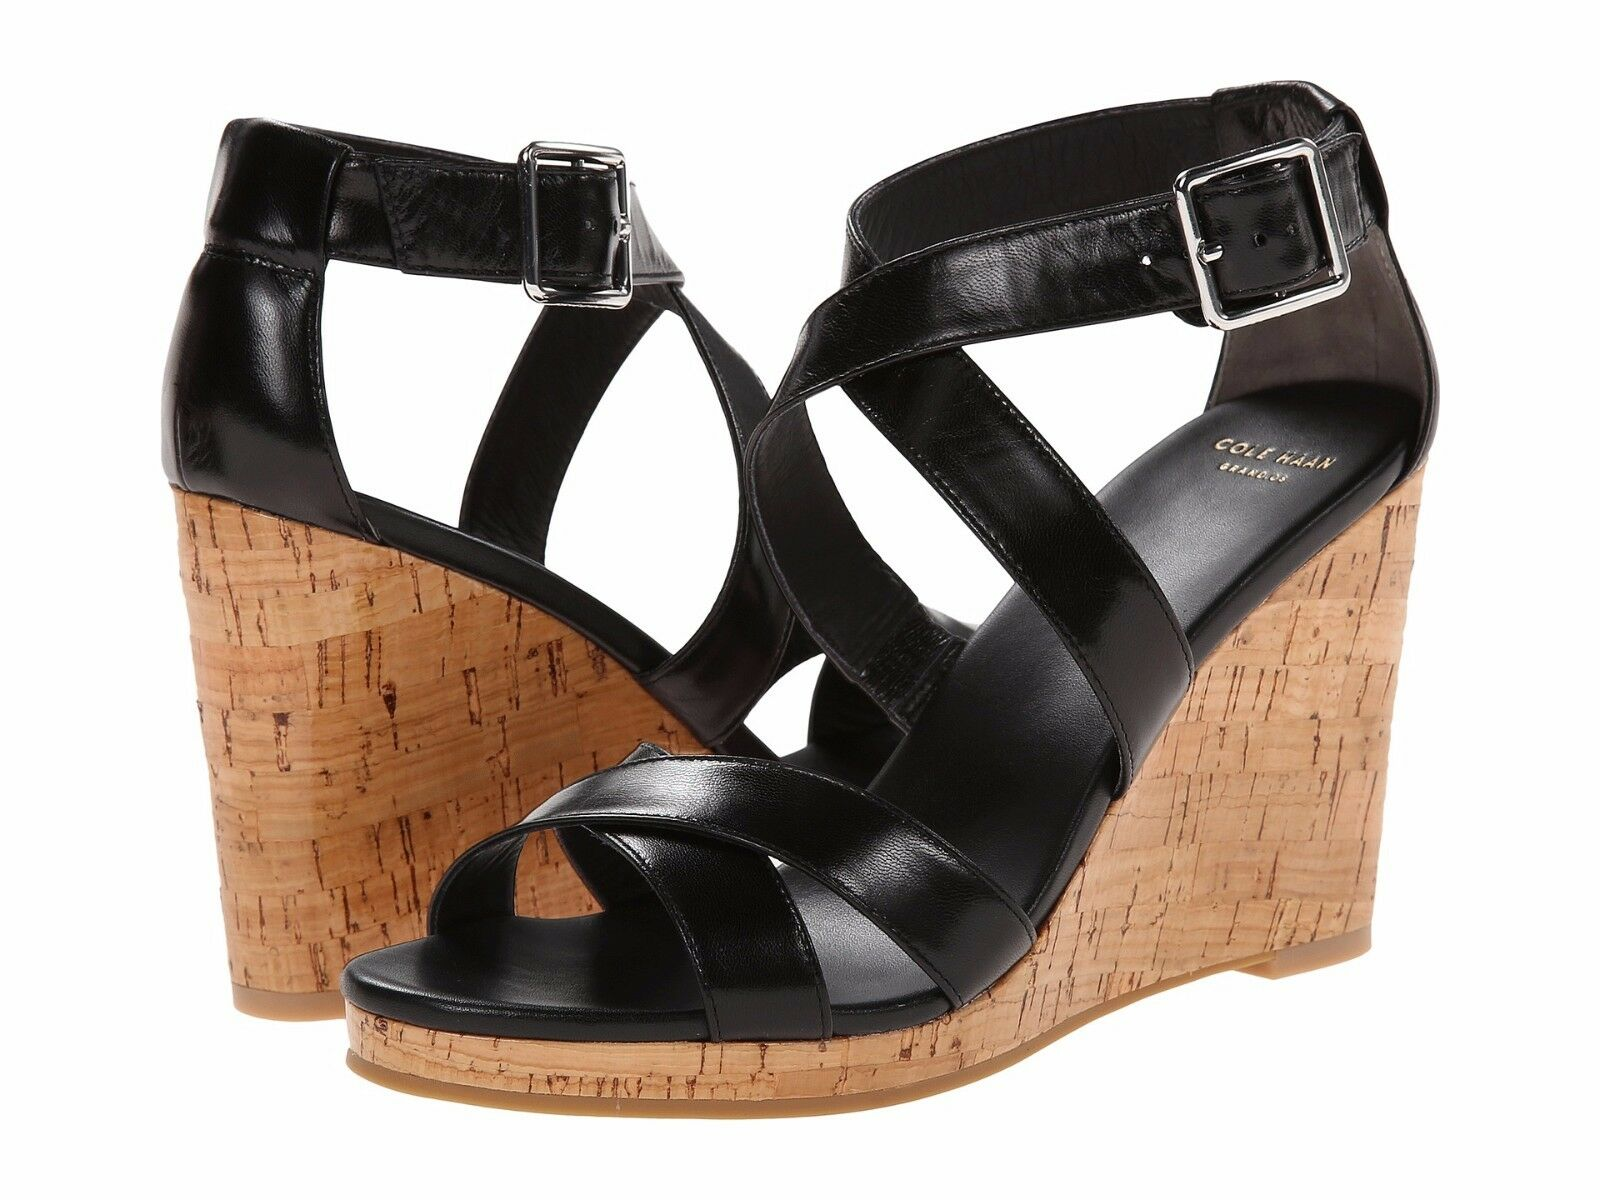 Cole Haan Jillian Black Leather Wedge Sandals Size 9.5